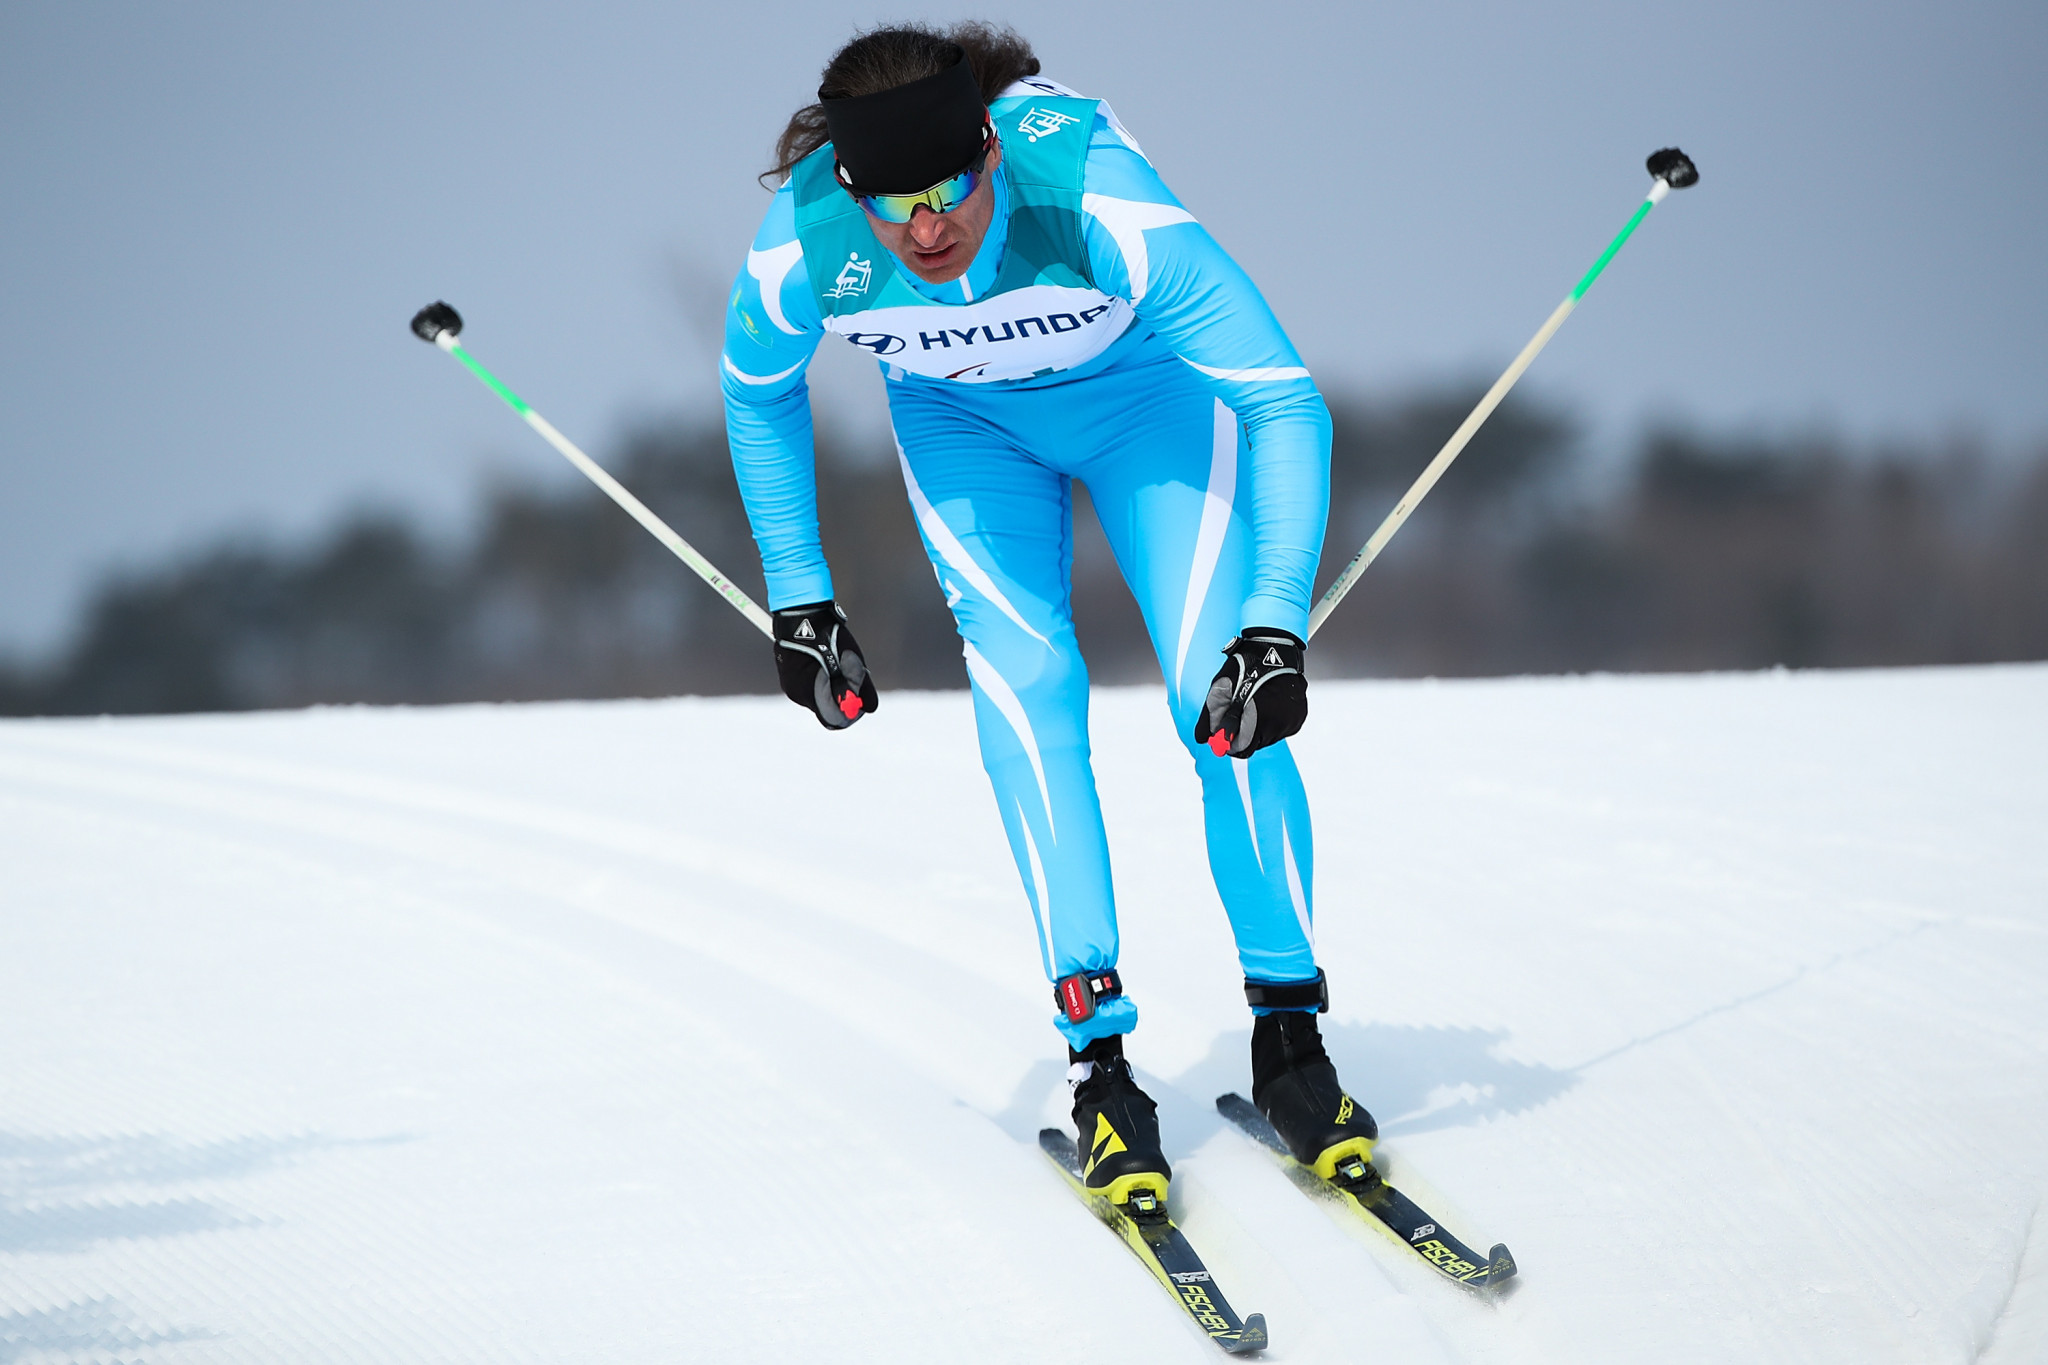 Kazakhstan's Alexander Kolyadin won all three of the races he competed in today ©Getty Images